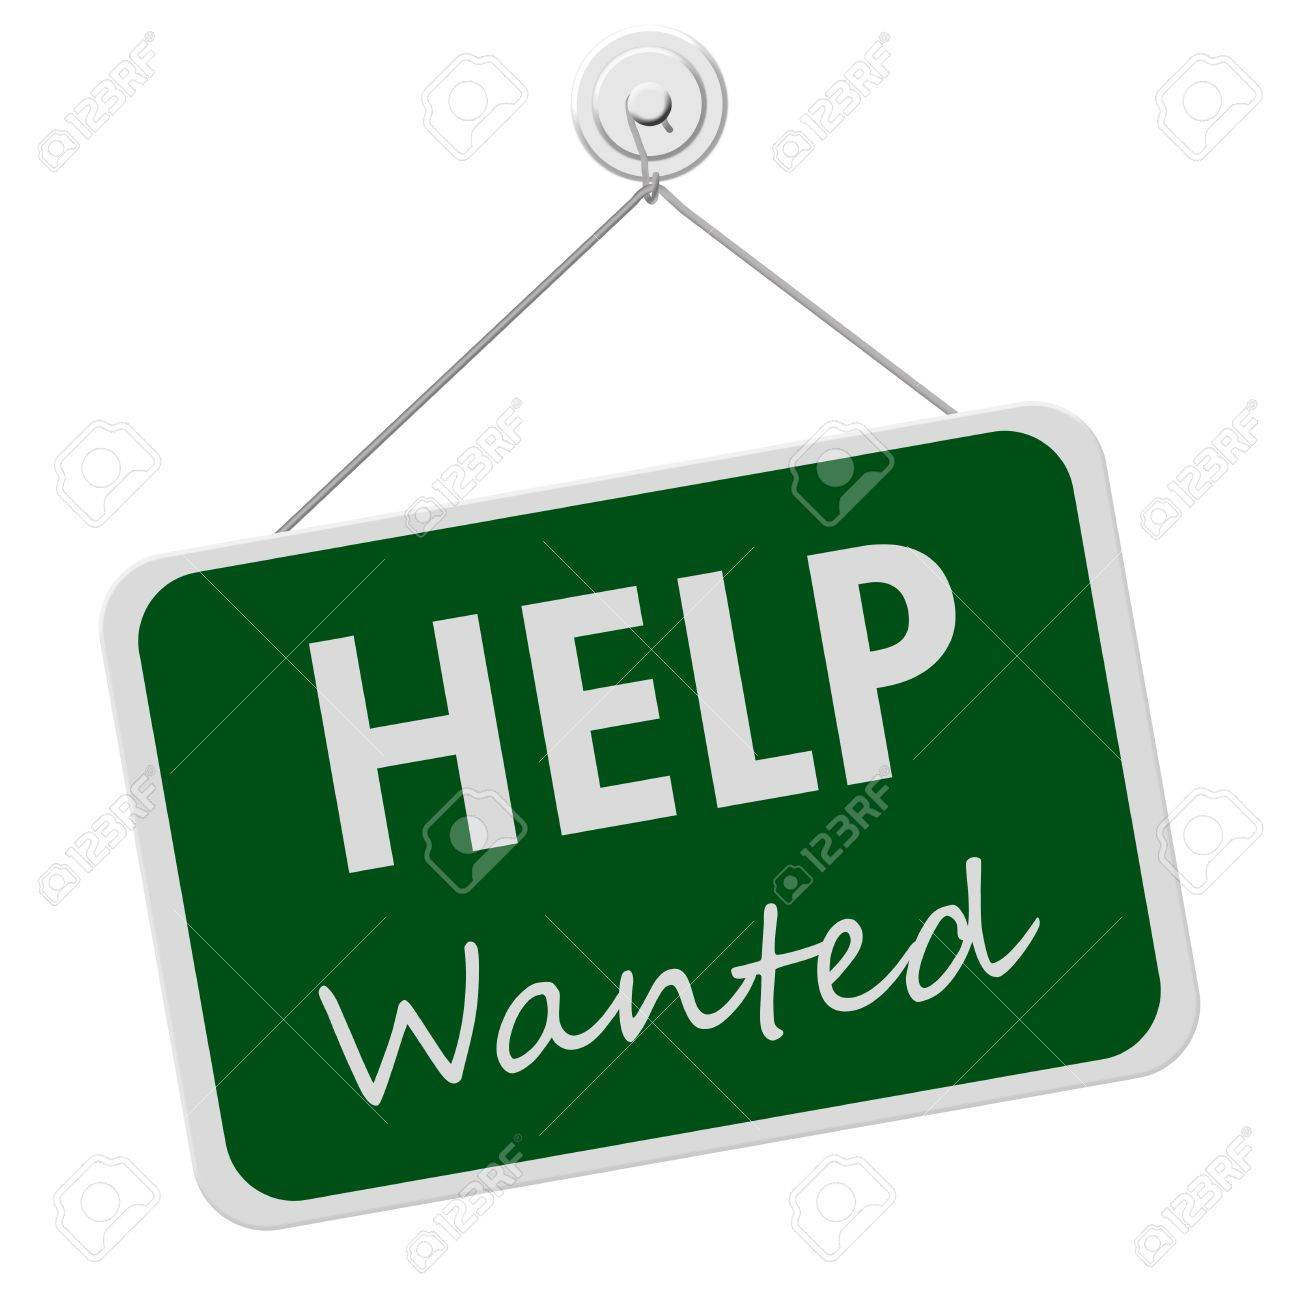 Help wanted clipart free 5 » Clipart Portal.